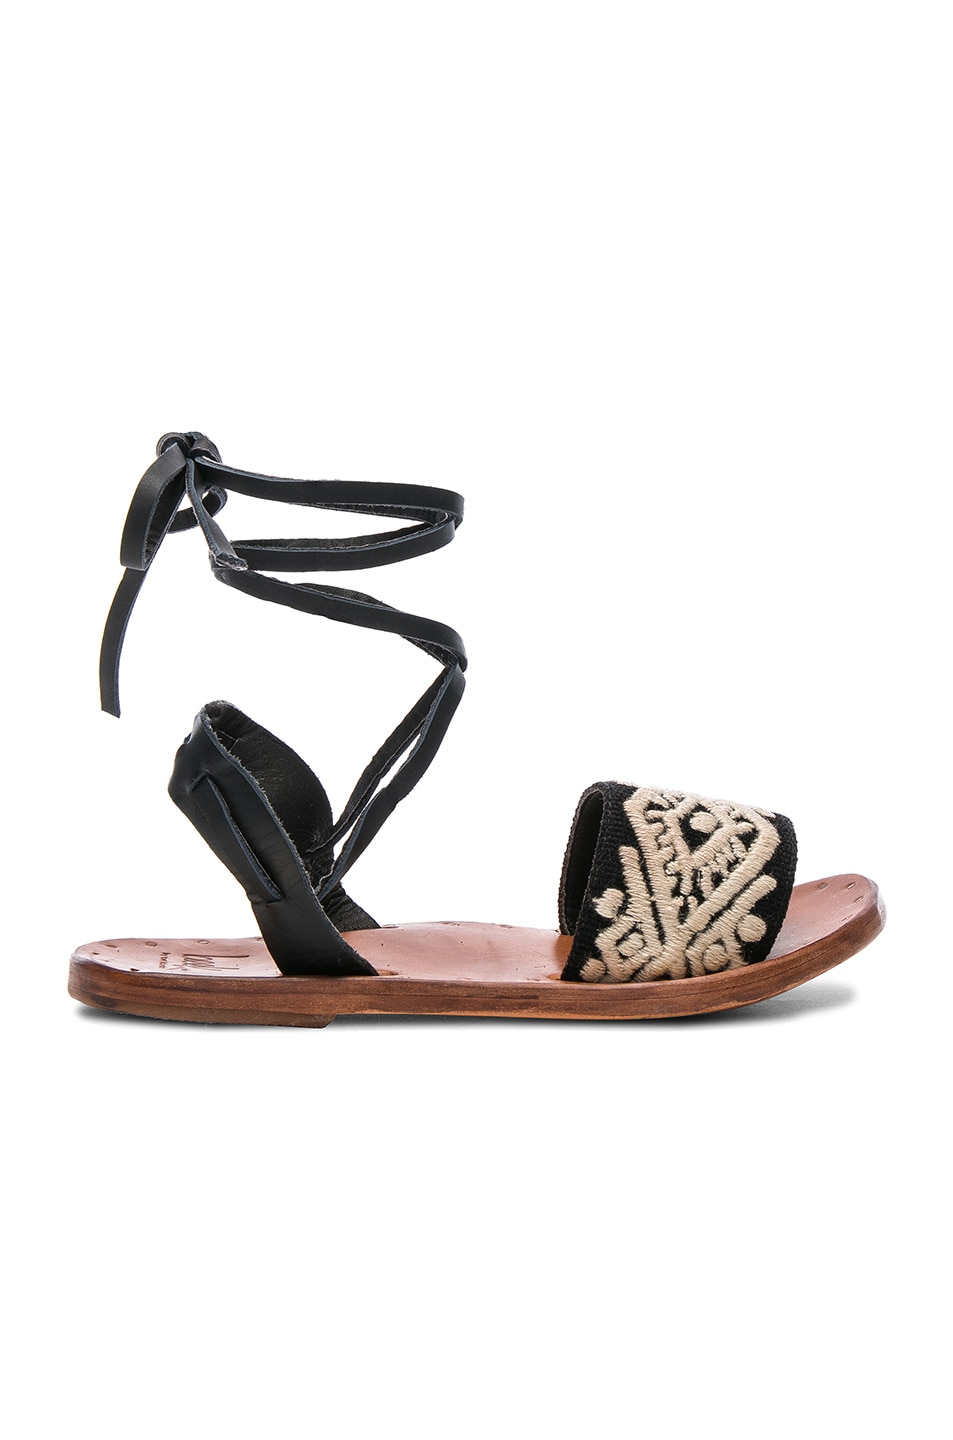 Image 1 of Beek Leather & Embroidery Toucan Sandals in Black & Natural